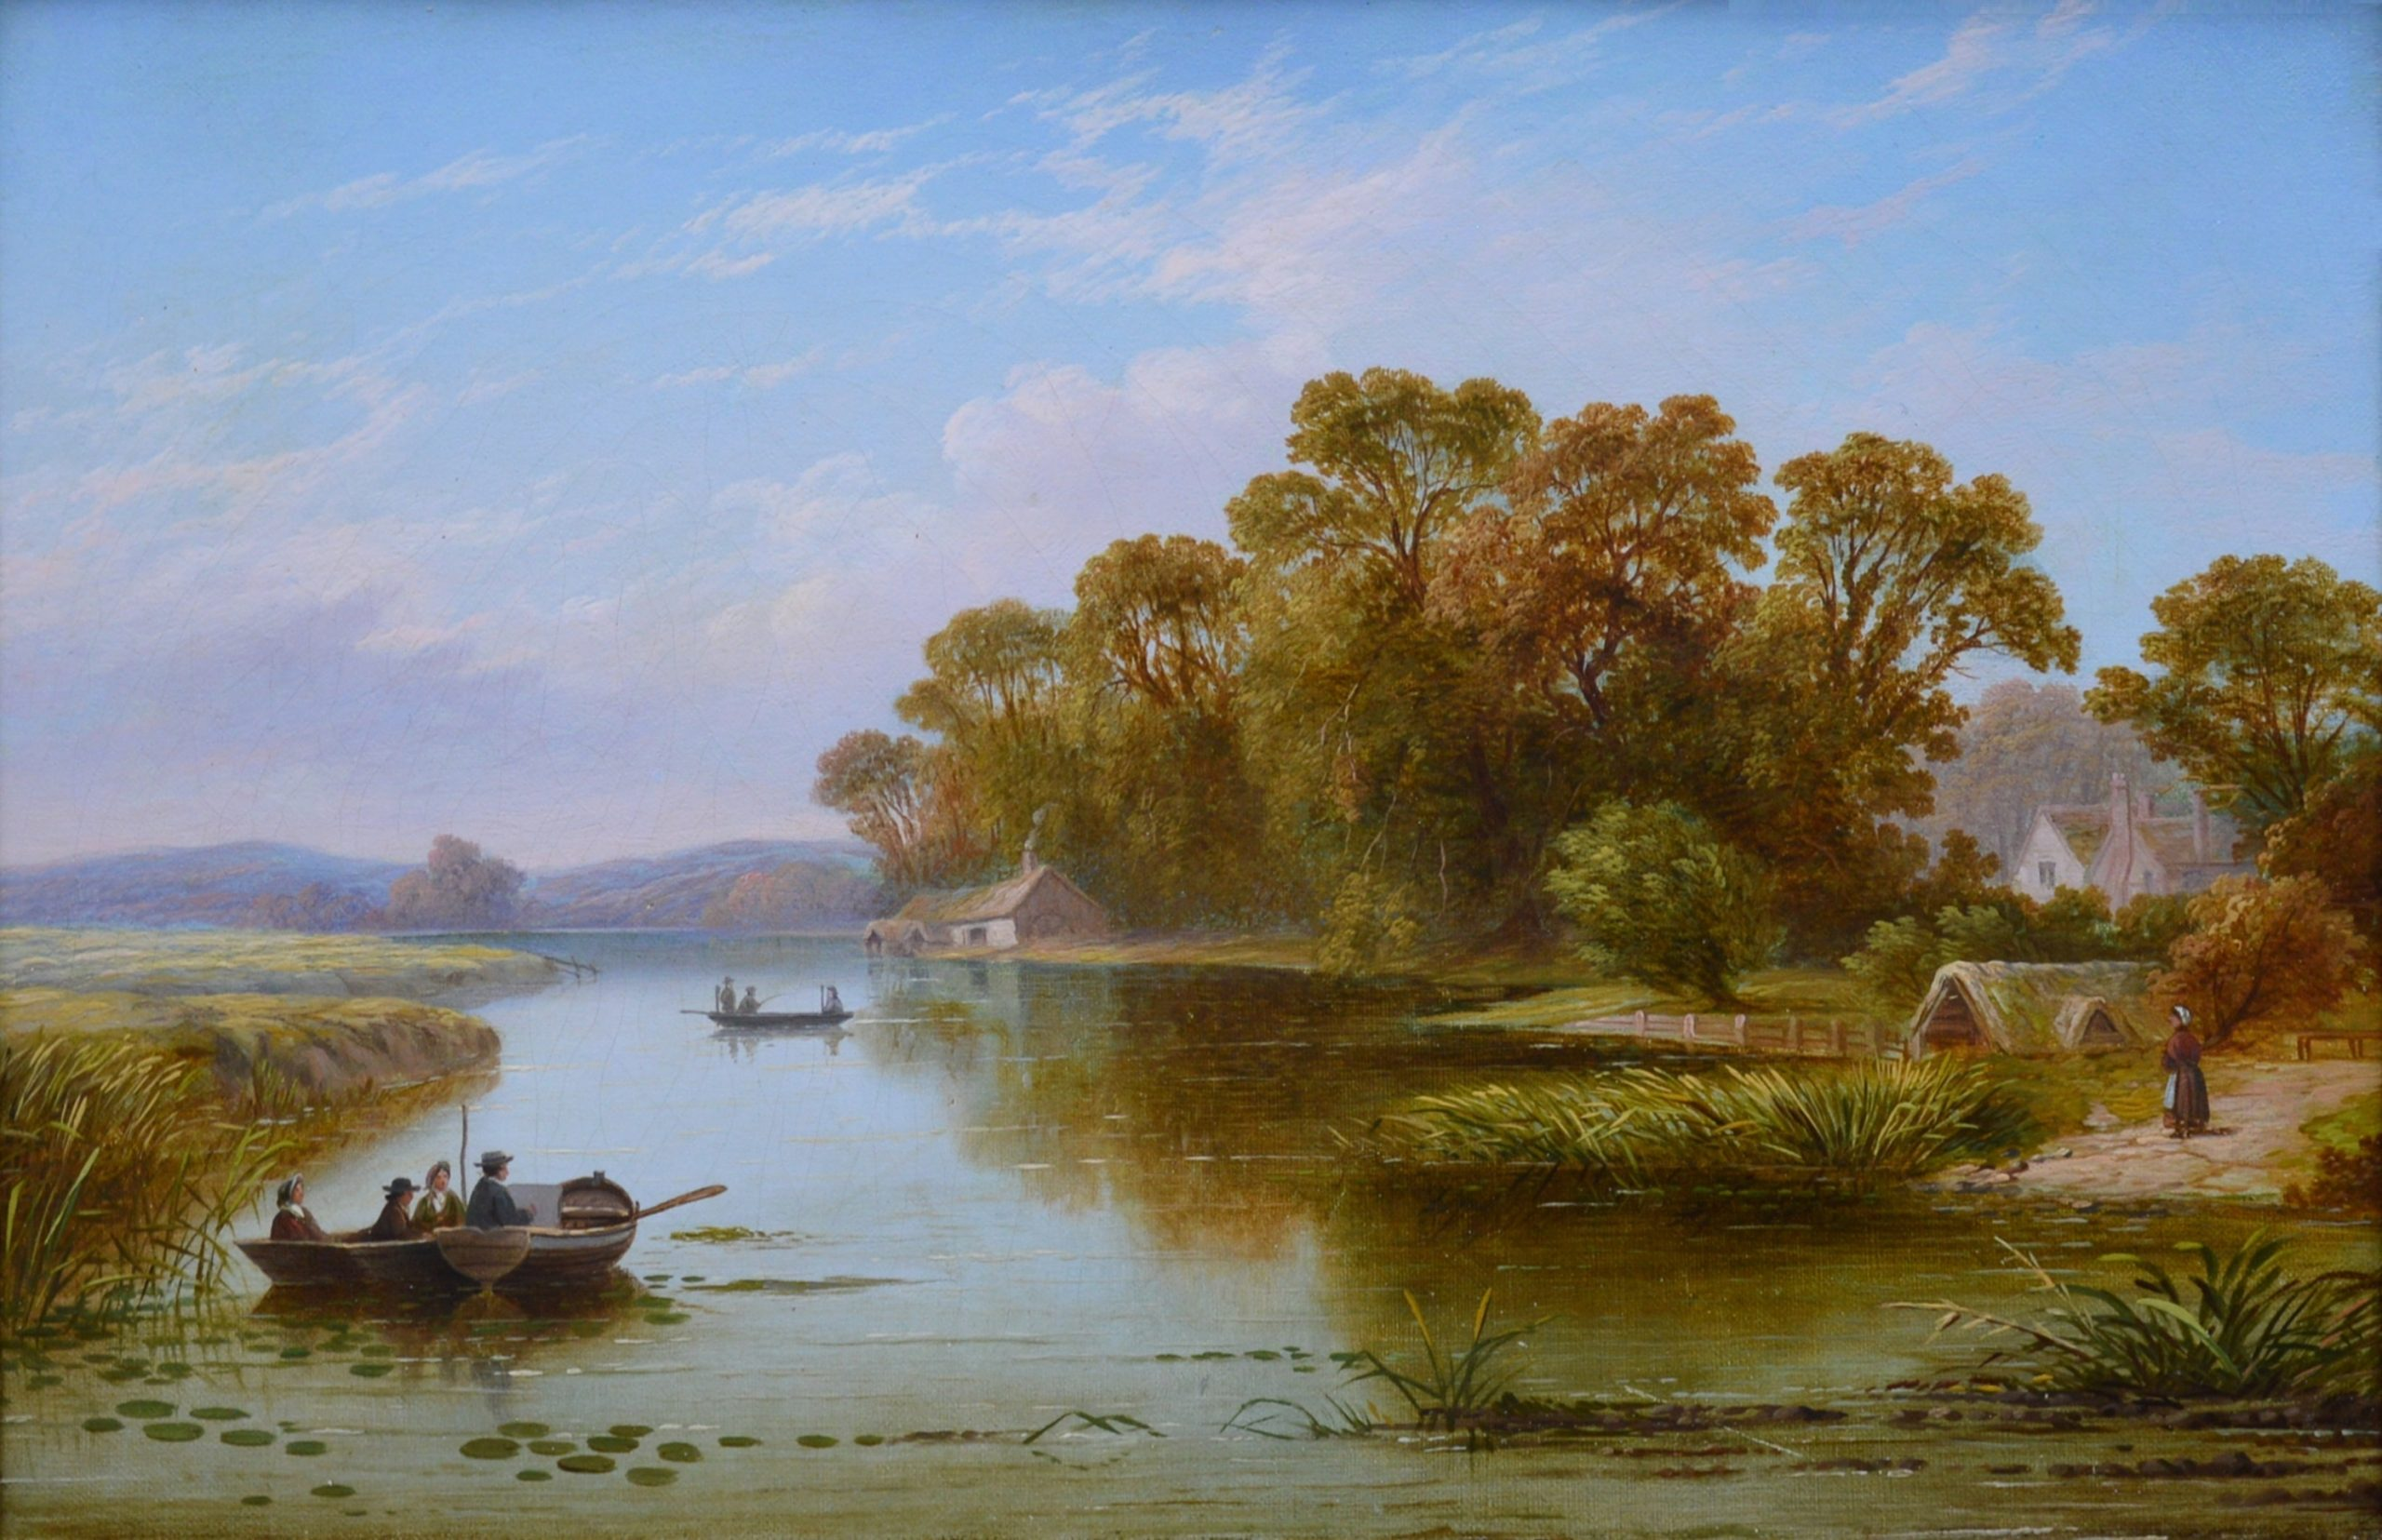 The Thames near Hampton - 19th Century River Landscape Oil Painting Image